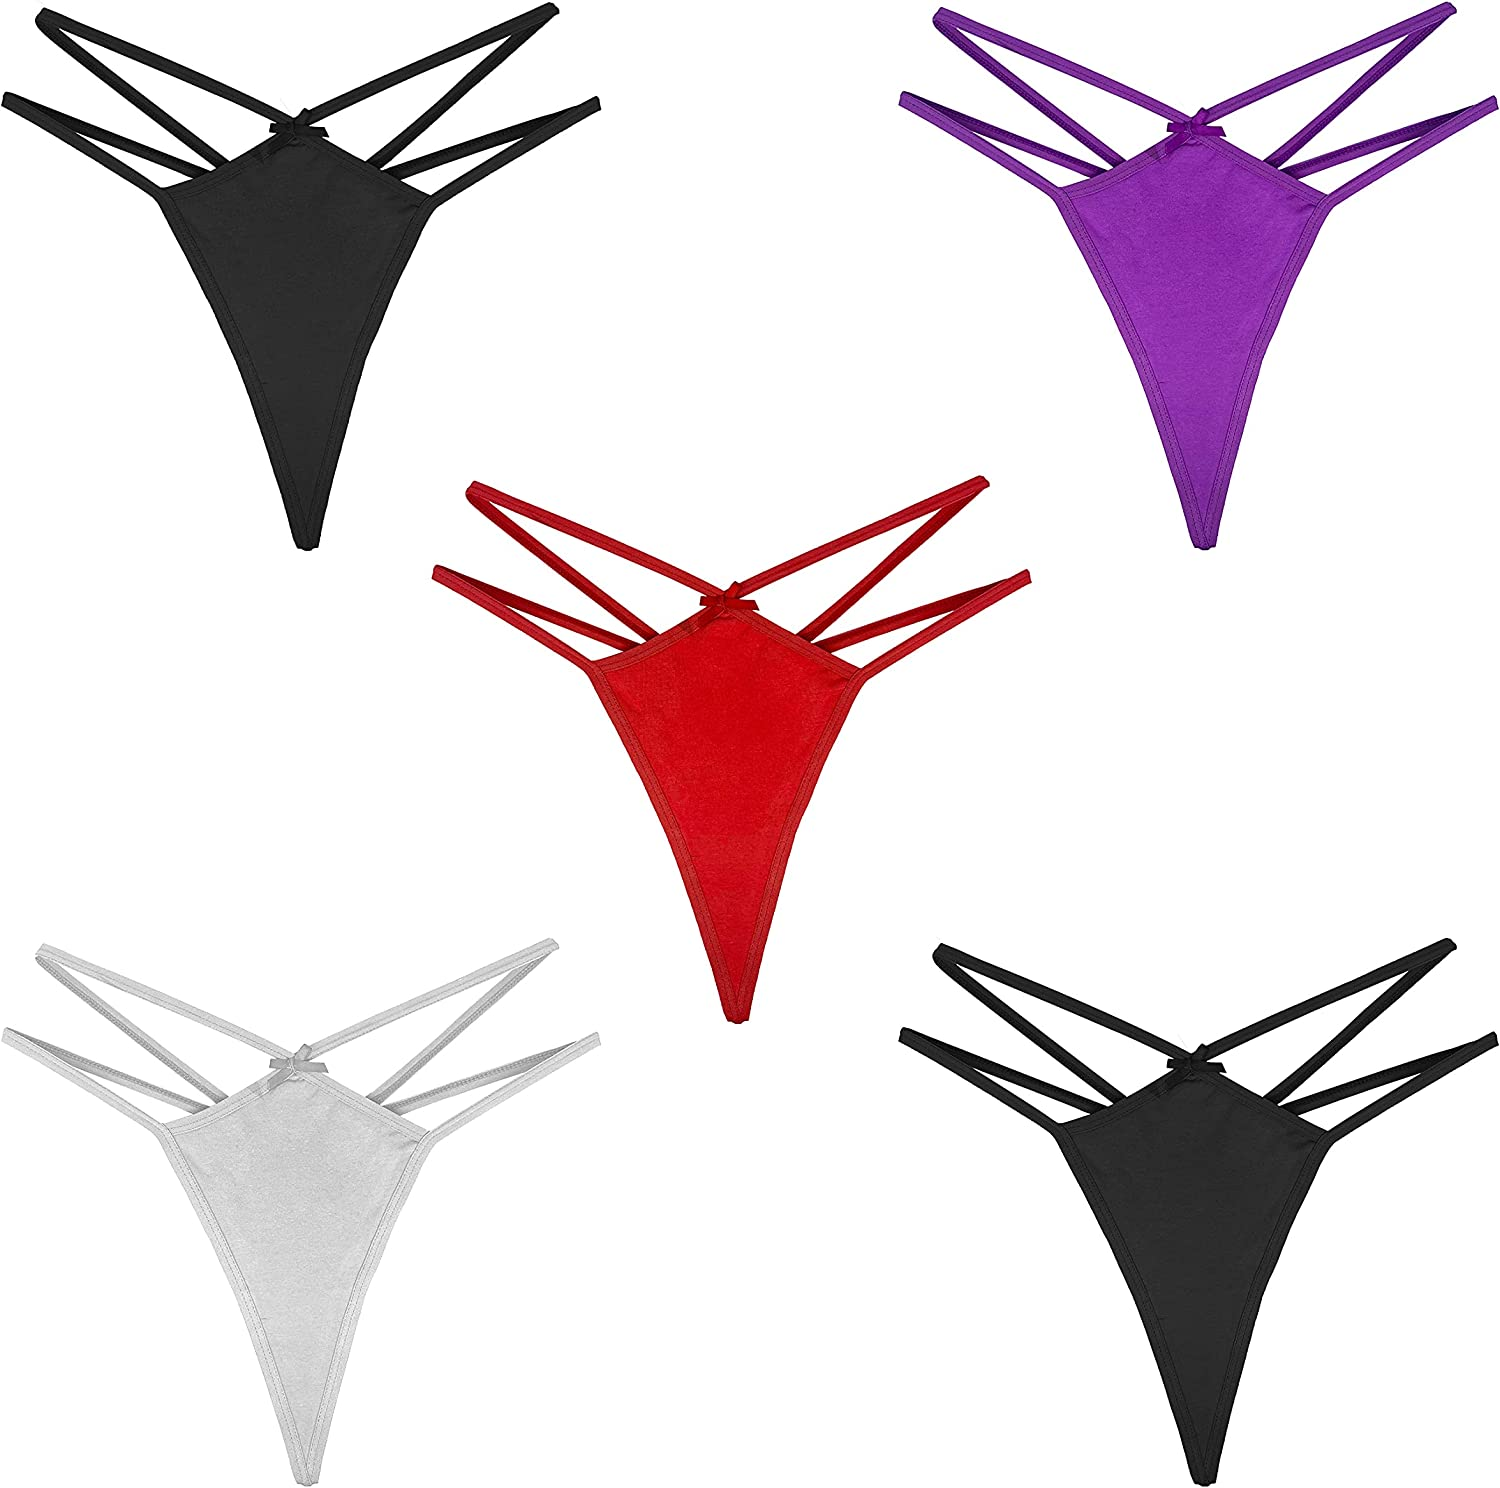 Umiehary Women's Breathable Fashion Low Rise T Back Sexy Cotton Thongs with Mulitple Color and Patterns